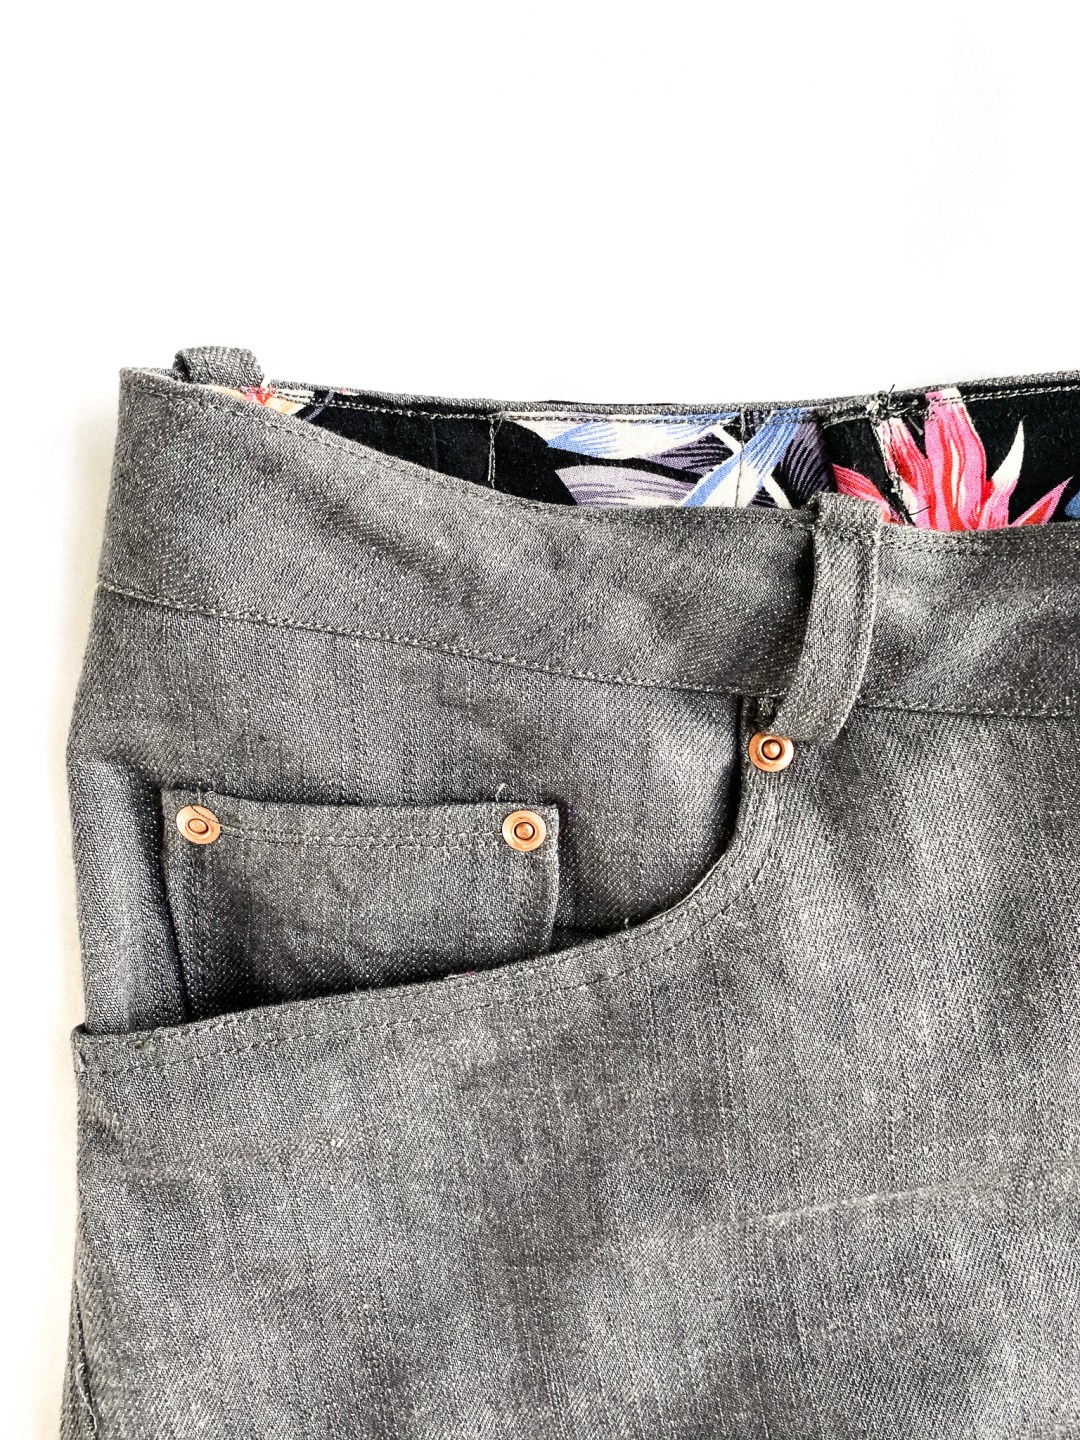 Halfmoon atelier 101 jeans - made by oh sew fearless